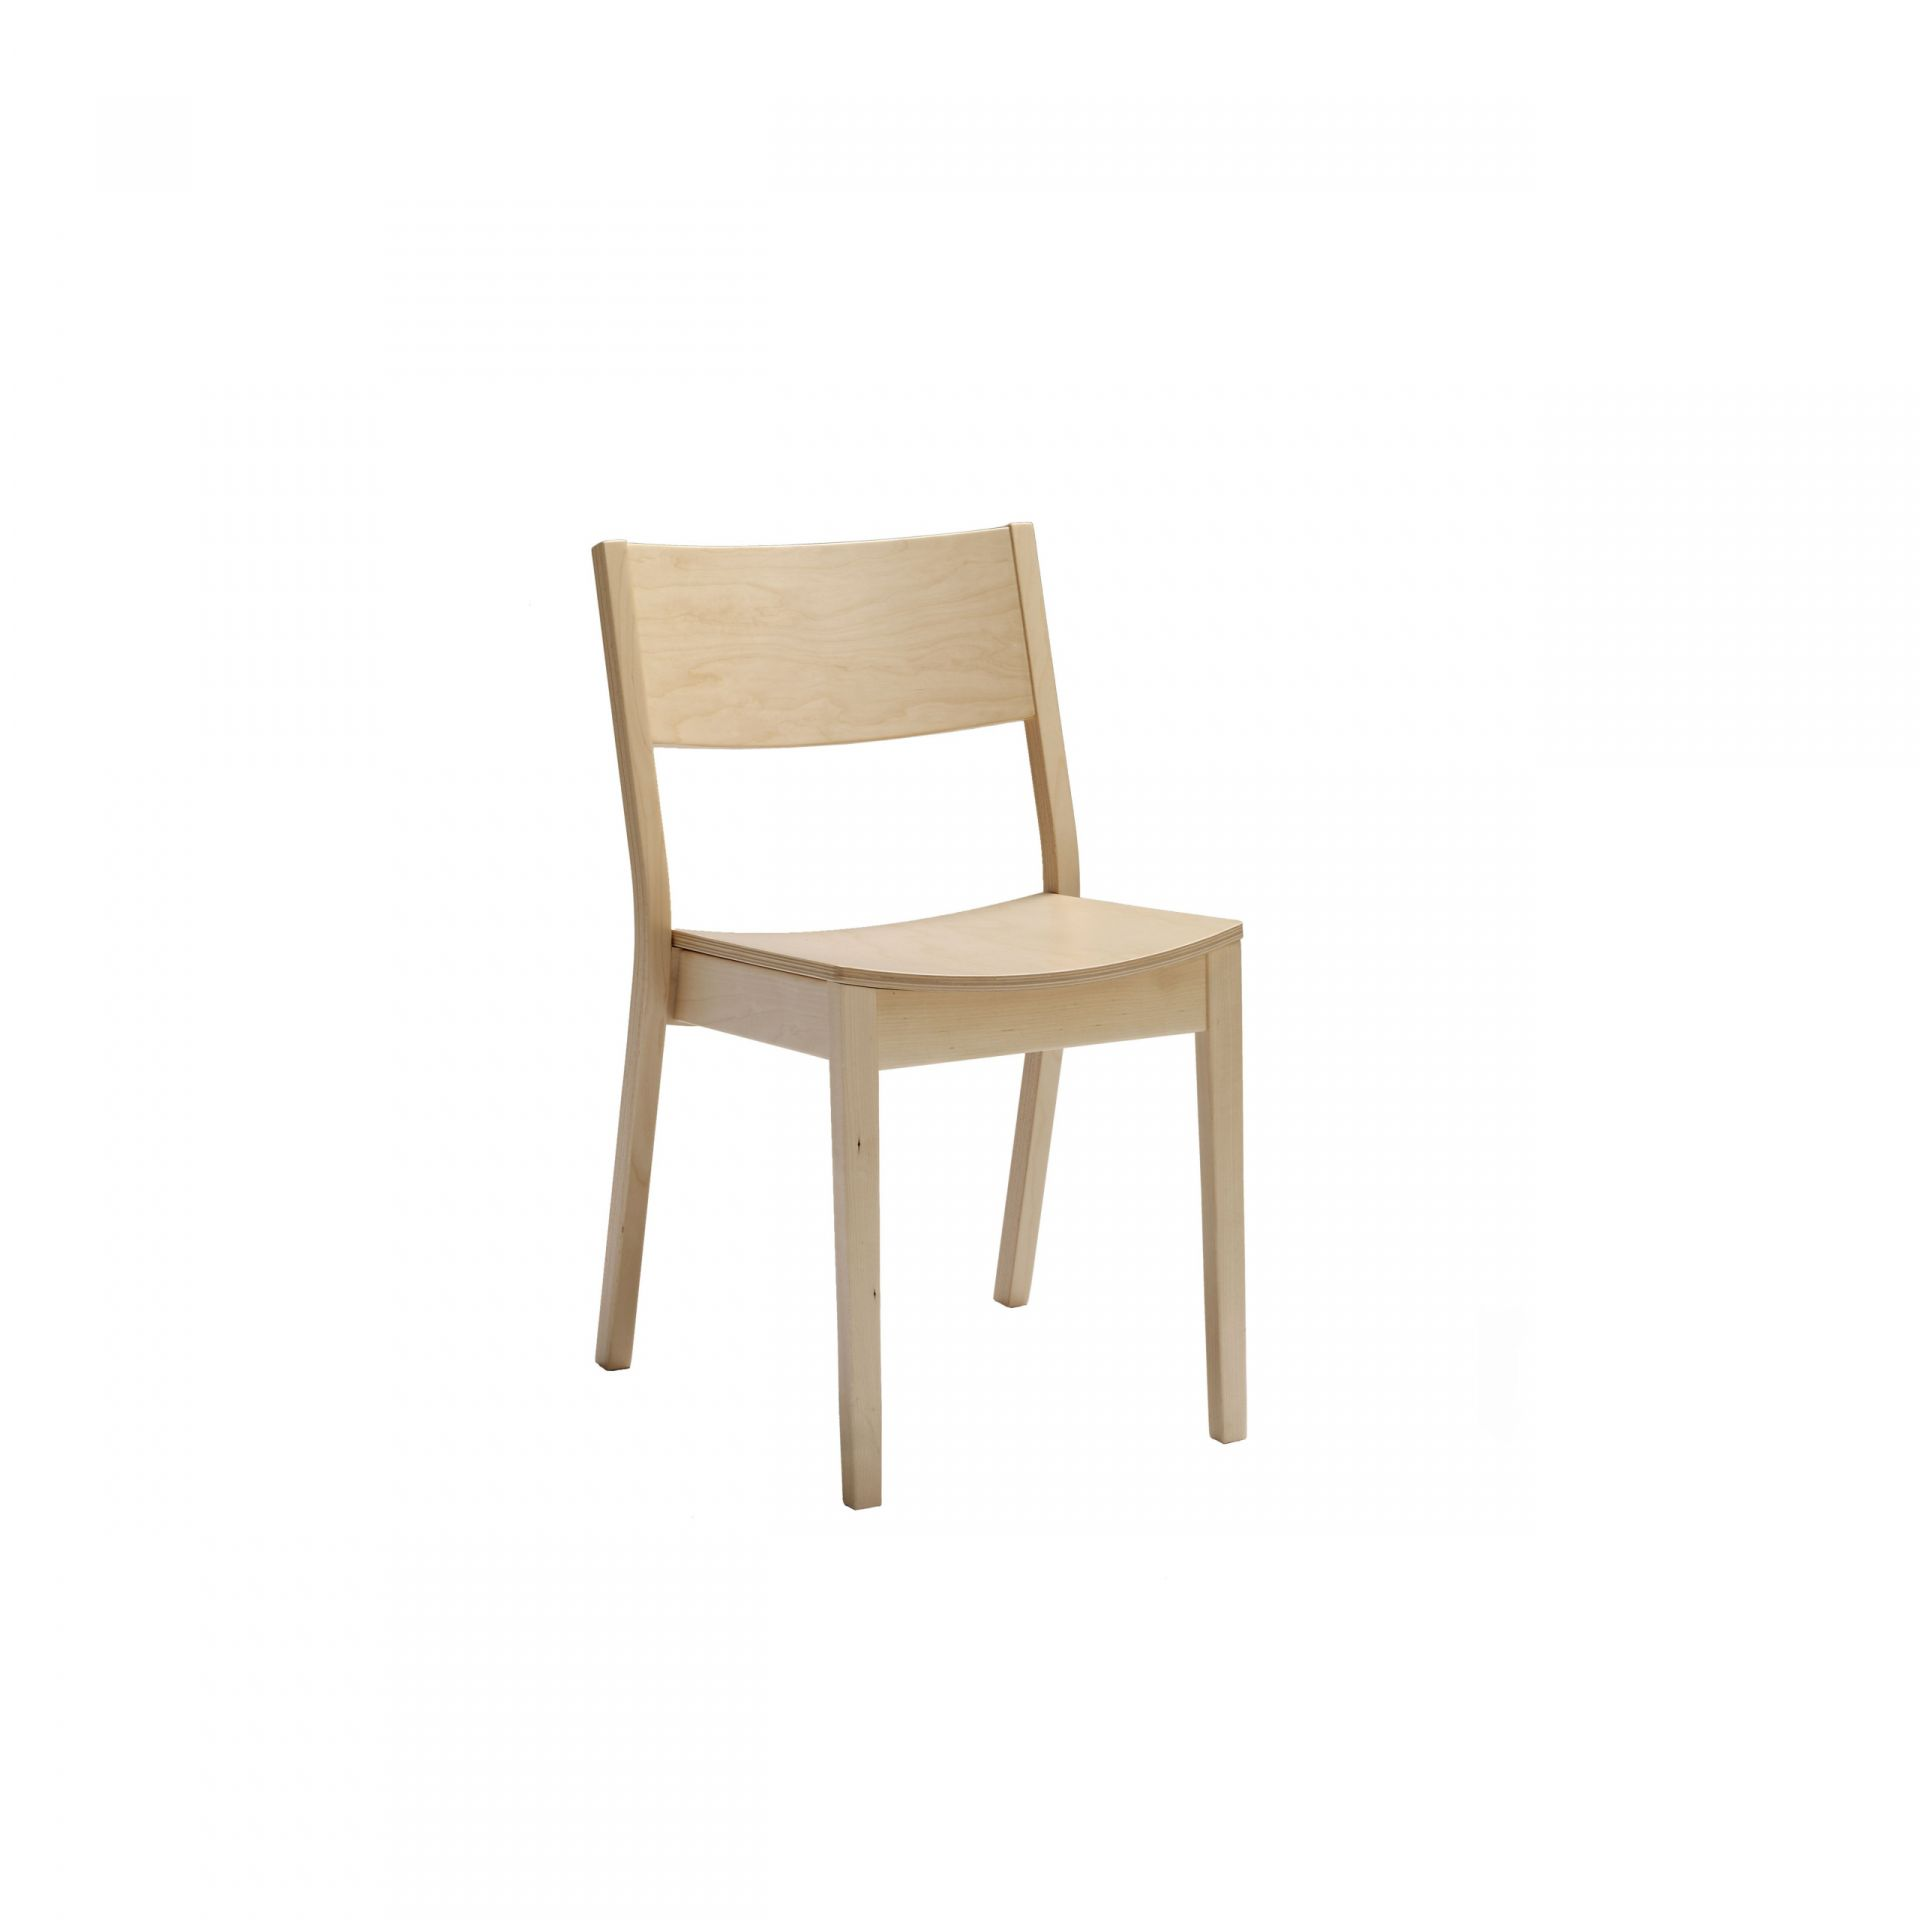 Monte Chair with wooden legs product image 1